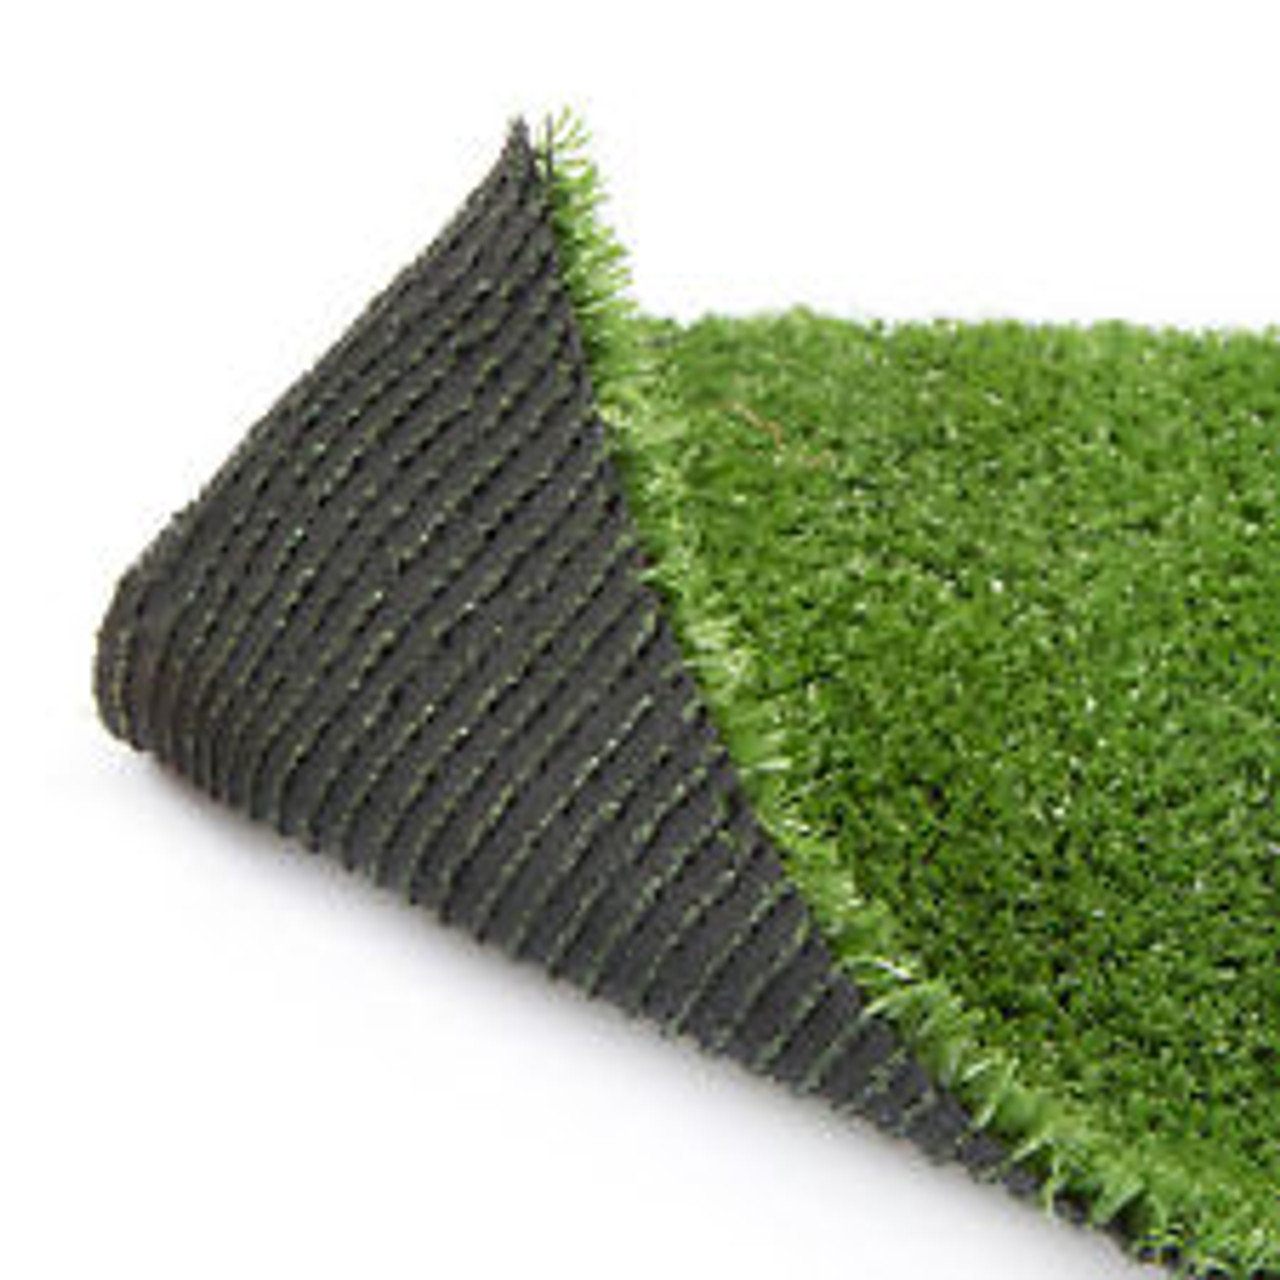 Scattered Green Grass Blades (3 Lbs)